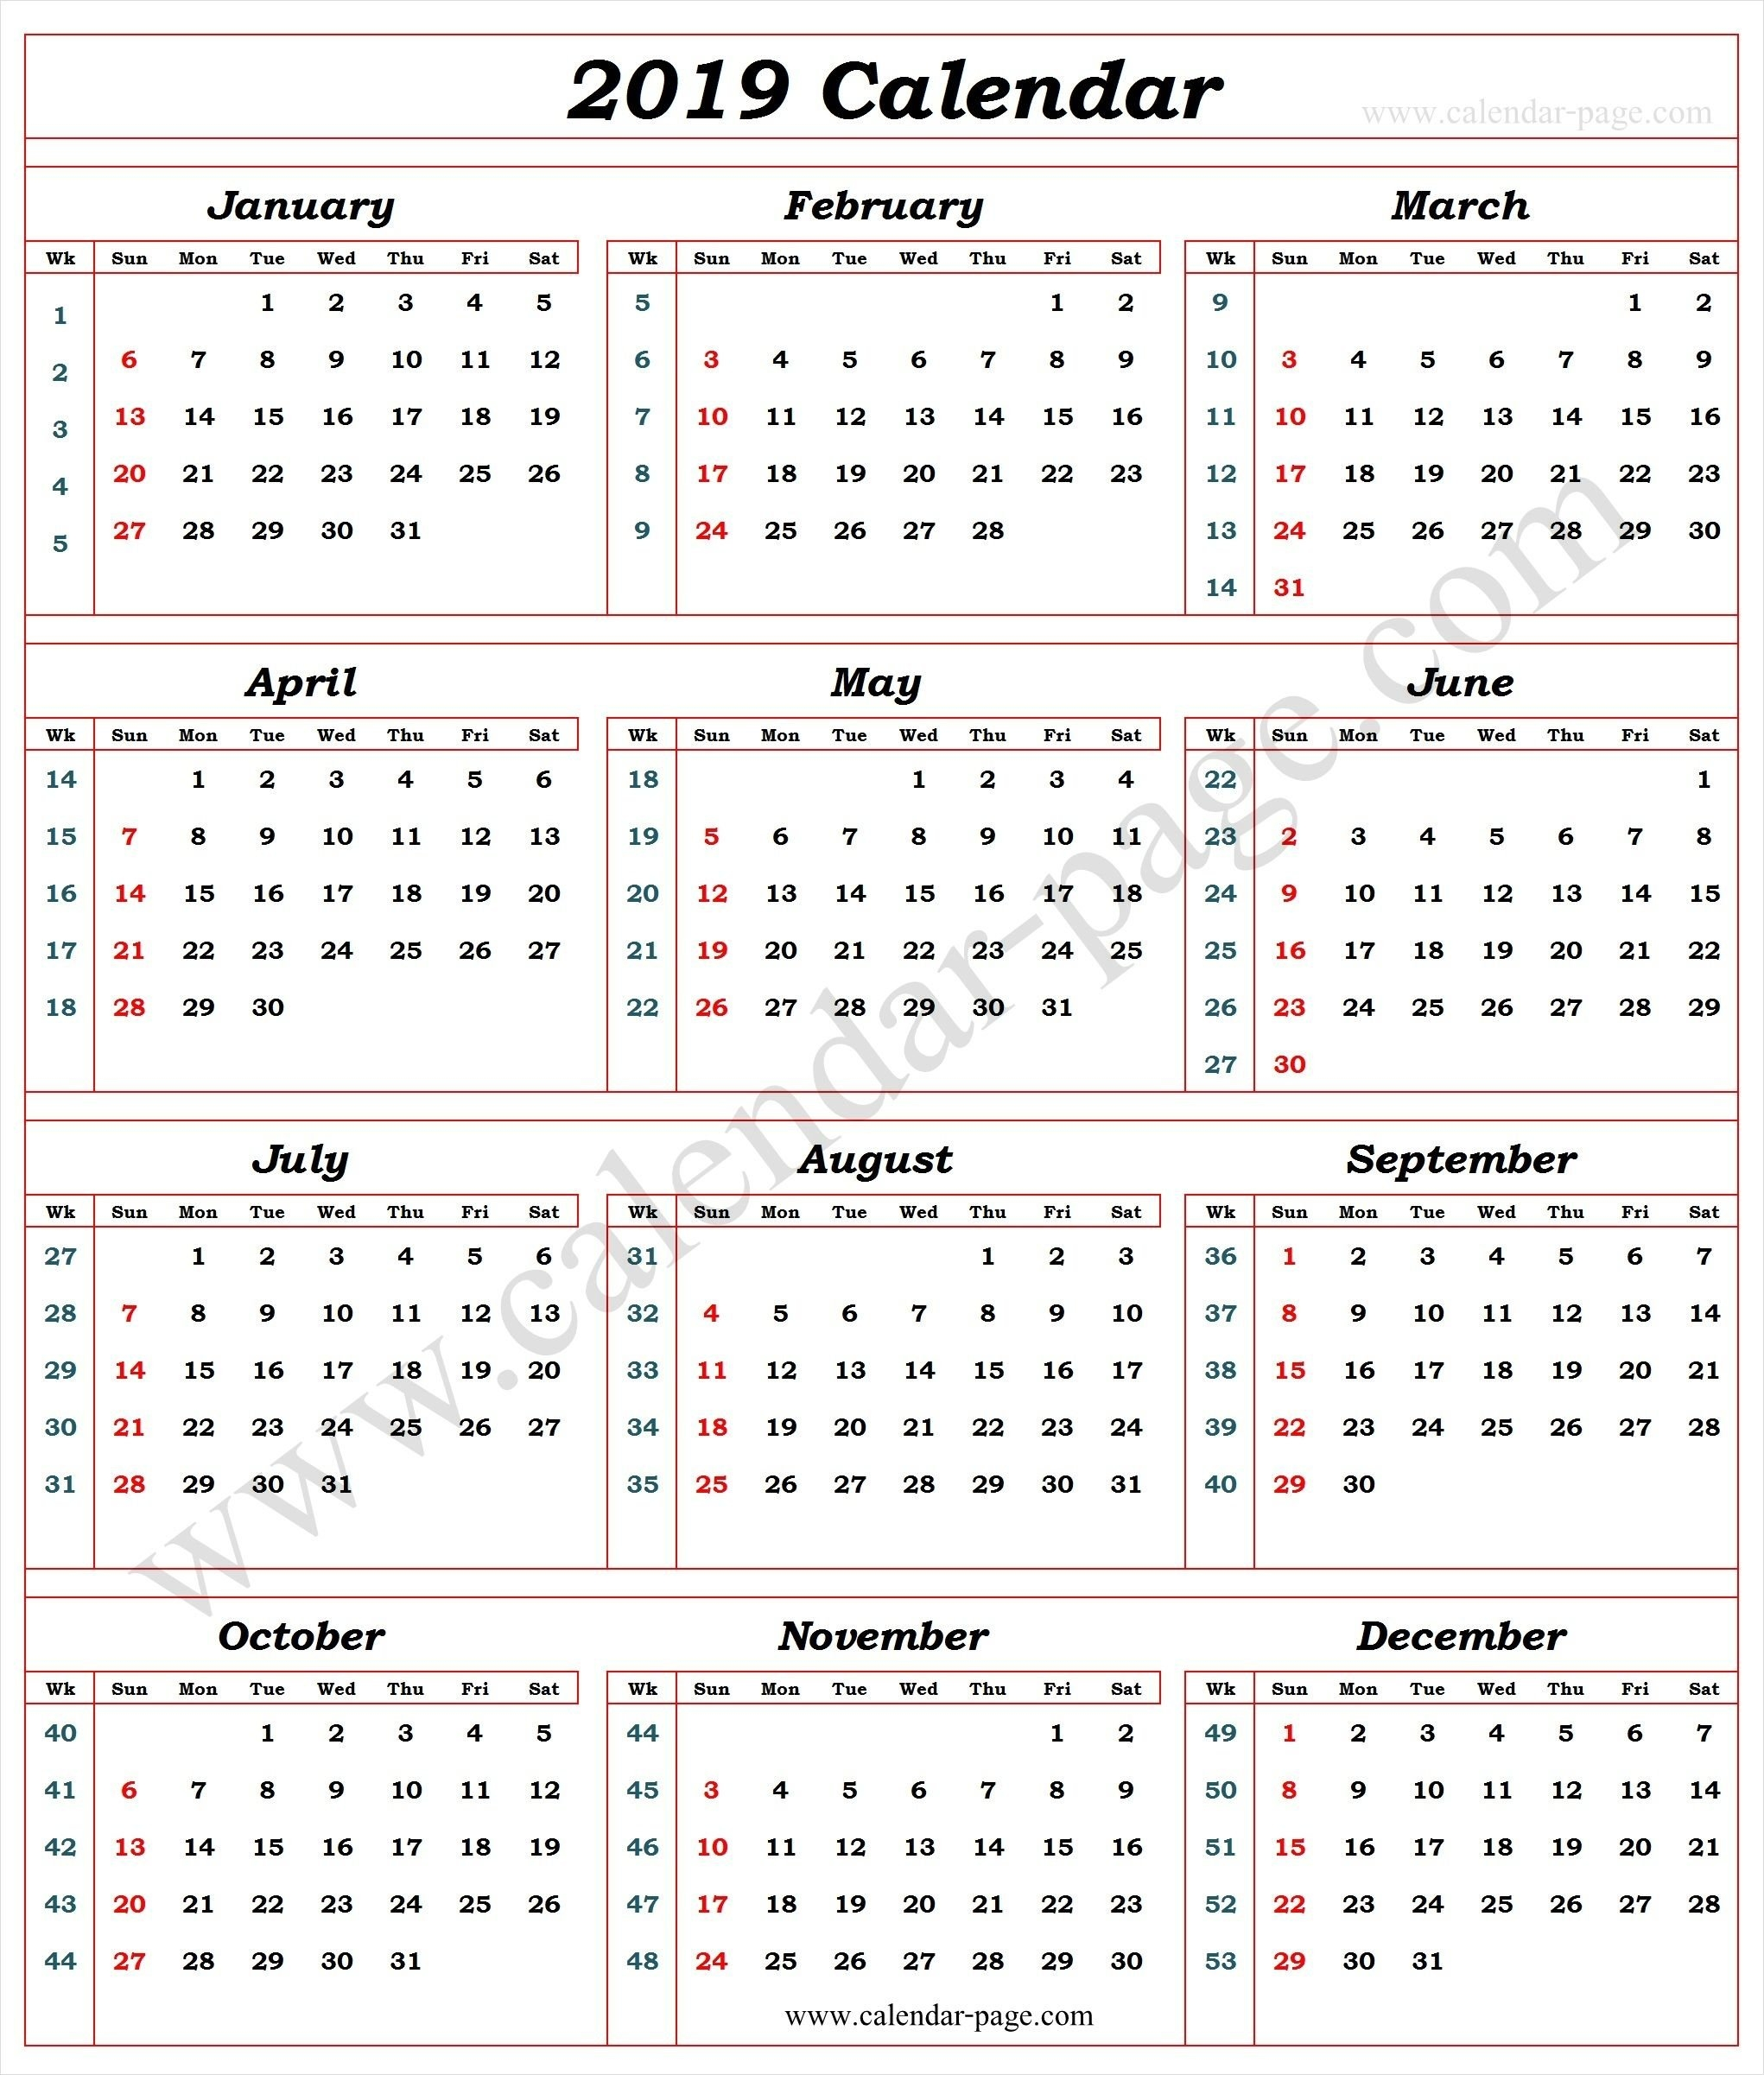 Calendar 2019 With Week Numbers | 2019 Calendar Template | Pinterest Week 7 Calendar 2019